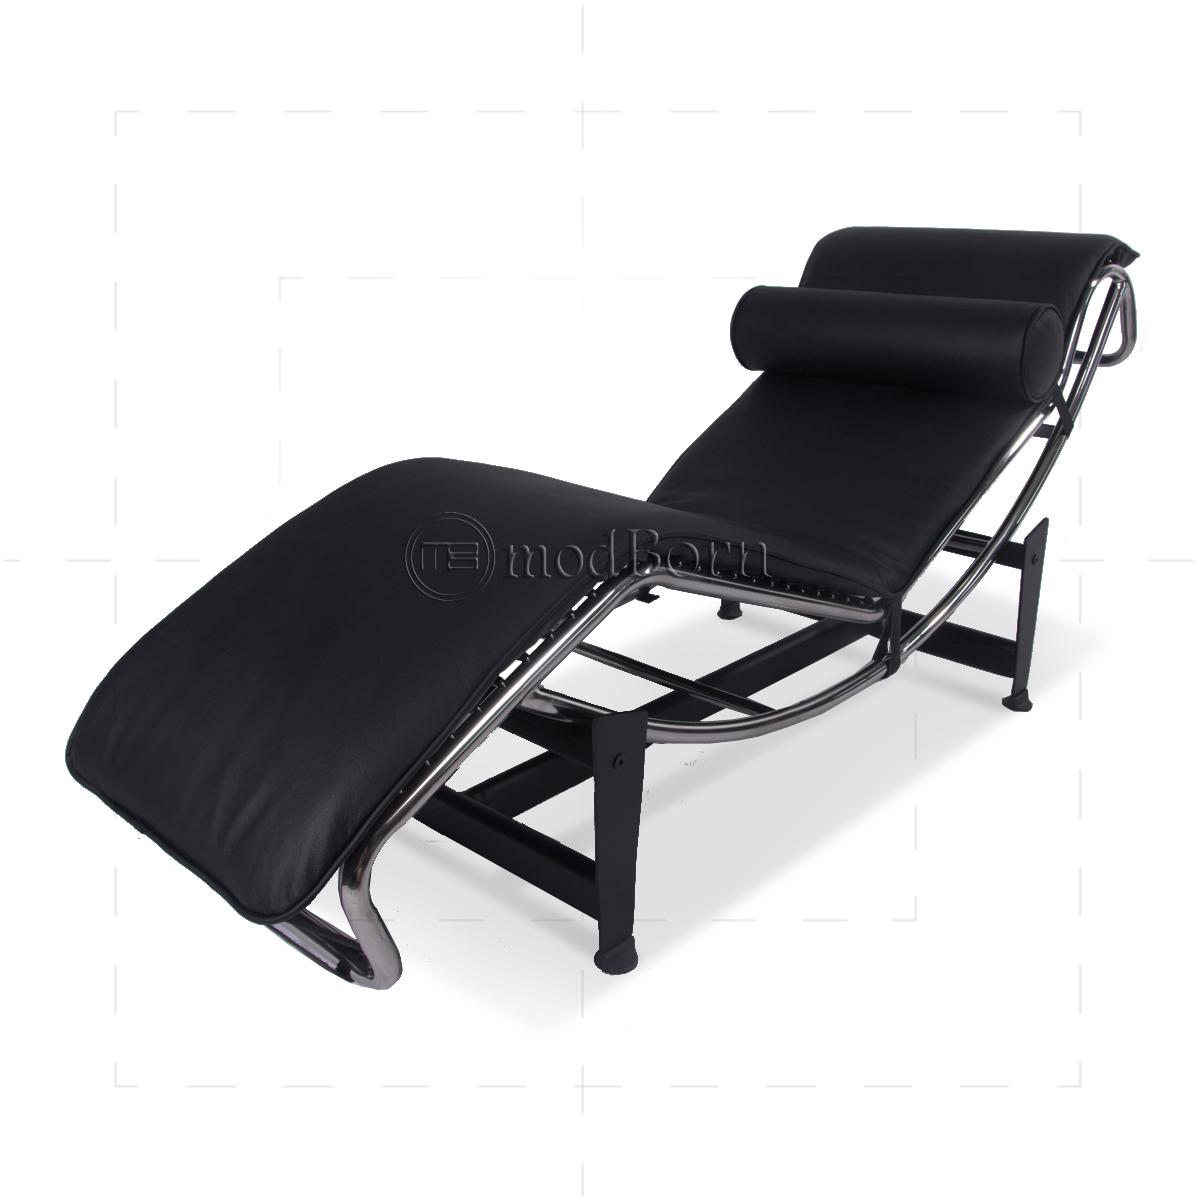 Le corbusier style lc4 chaise longue black leather for Black leather chaise